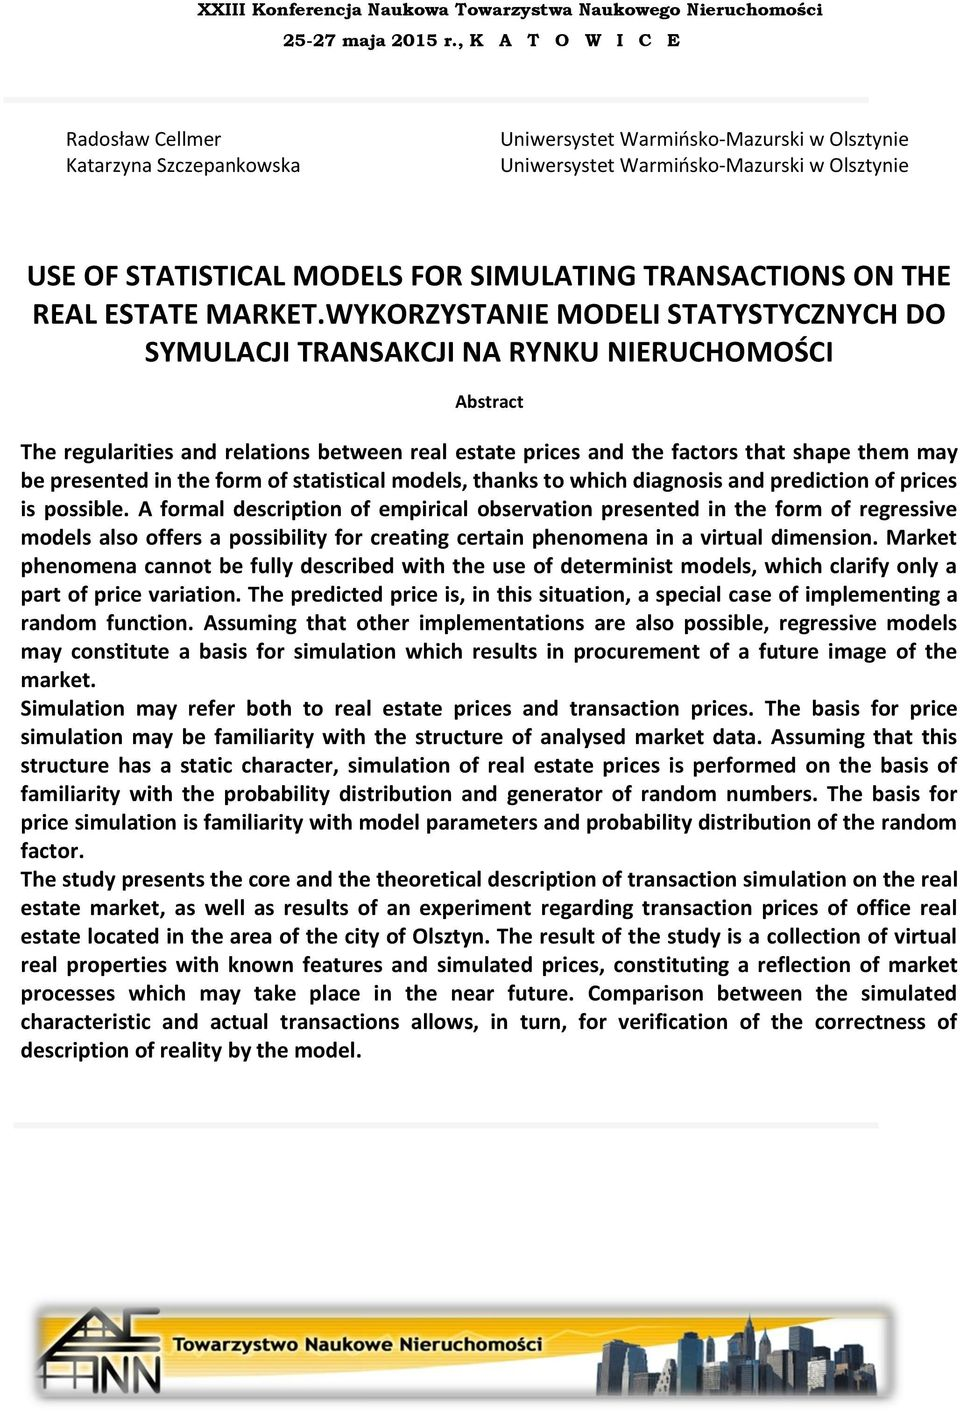 WYKORZYSTANIE MODELI STATYSTYCZNYCH DO SYMULACJI TRANSAKCJI NA RYNKU NIERUCHOMOŚCI Abstract The regularities and relations between real estate prices and the factors that shape them may be presented